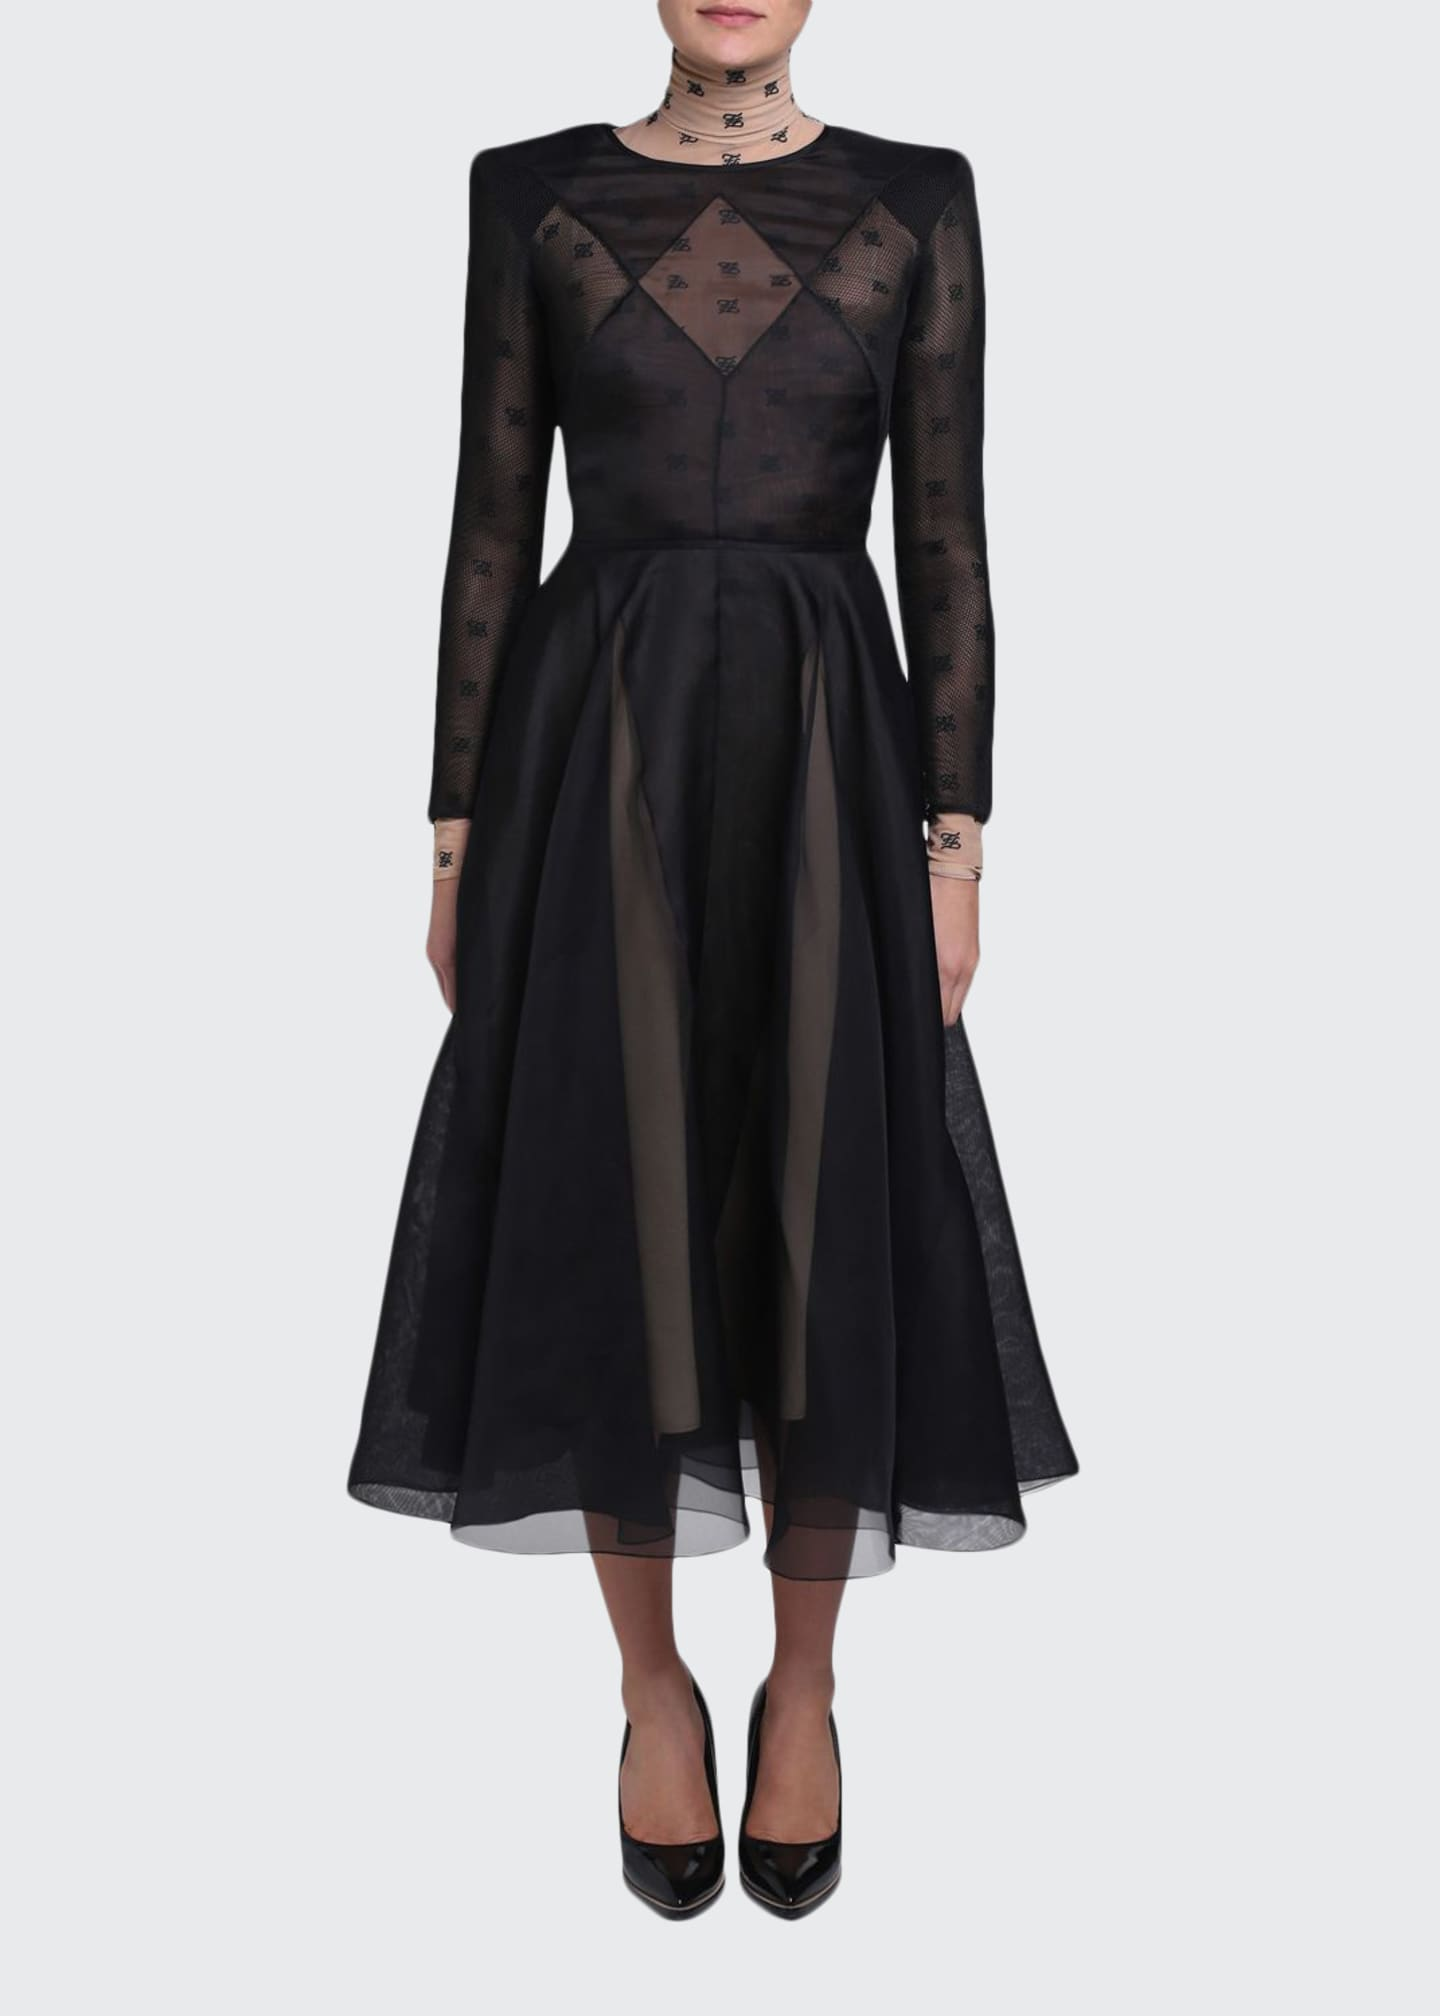 Fendi Chiffon Long-Sleeve Dress with Logo-Print Turtleneck Lining